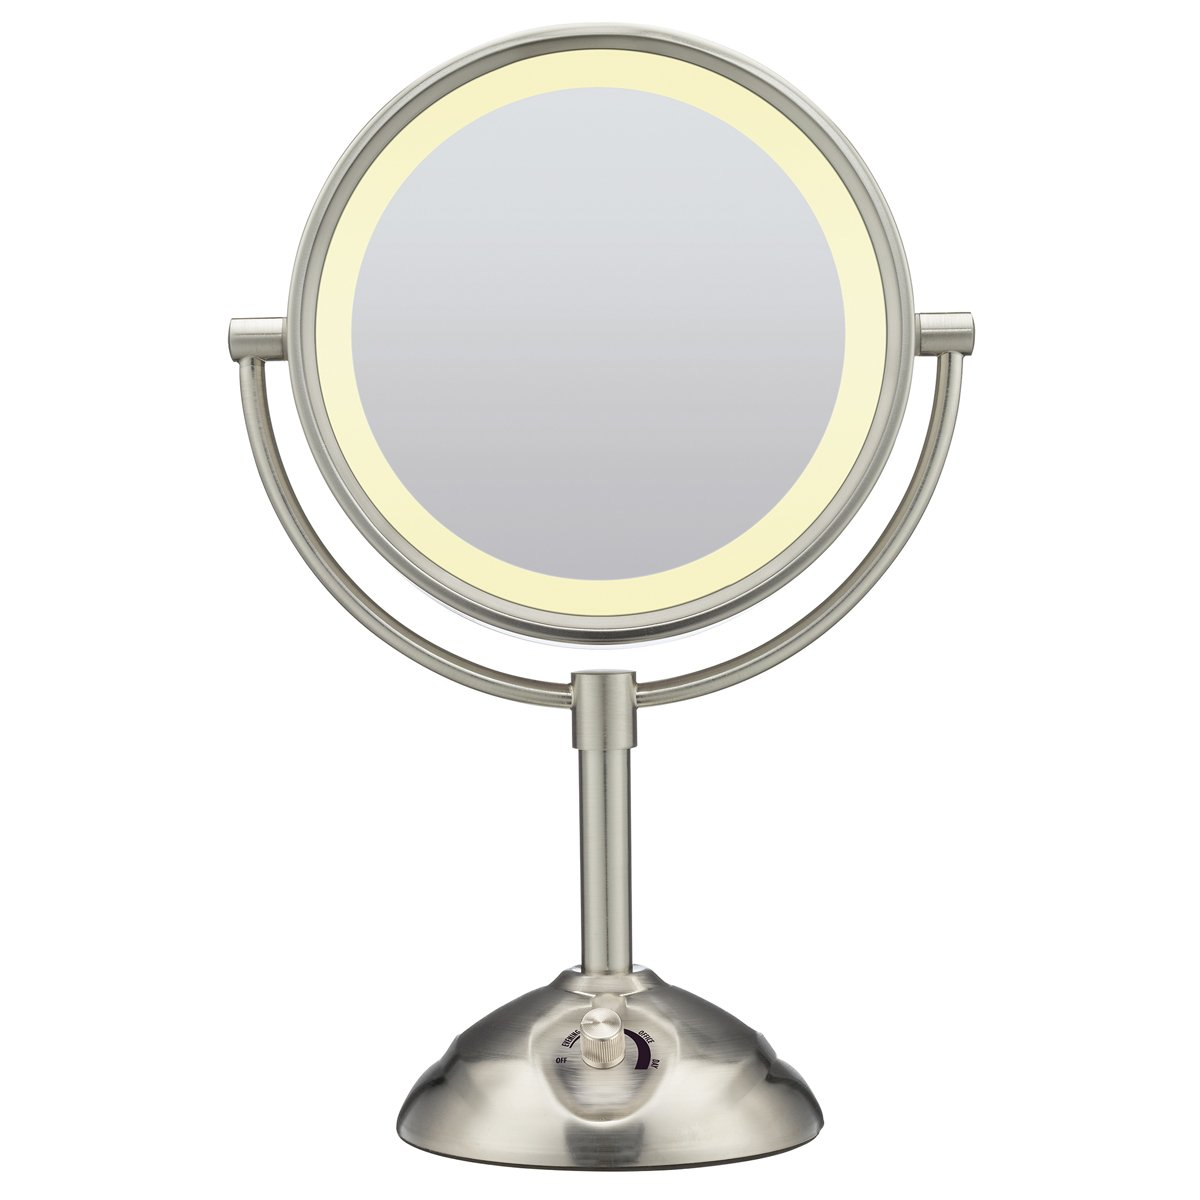 Conair lighted satin nickel double sided mirror amazon beauty mozeypictures Gallery